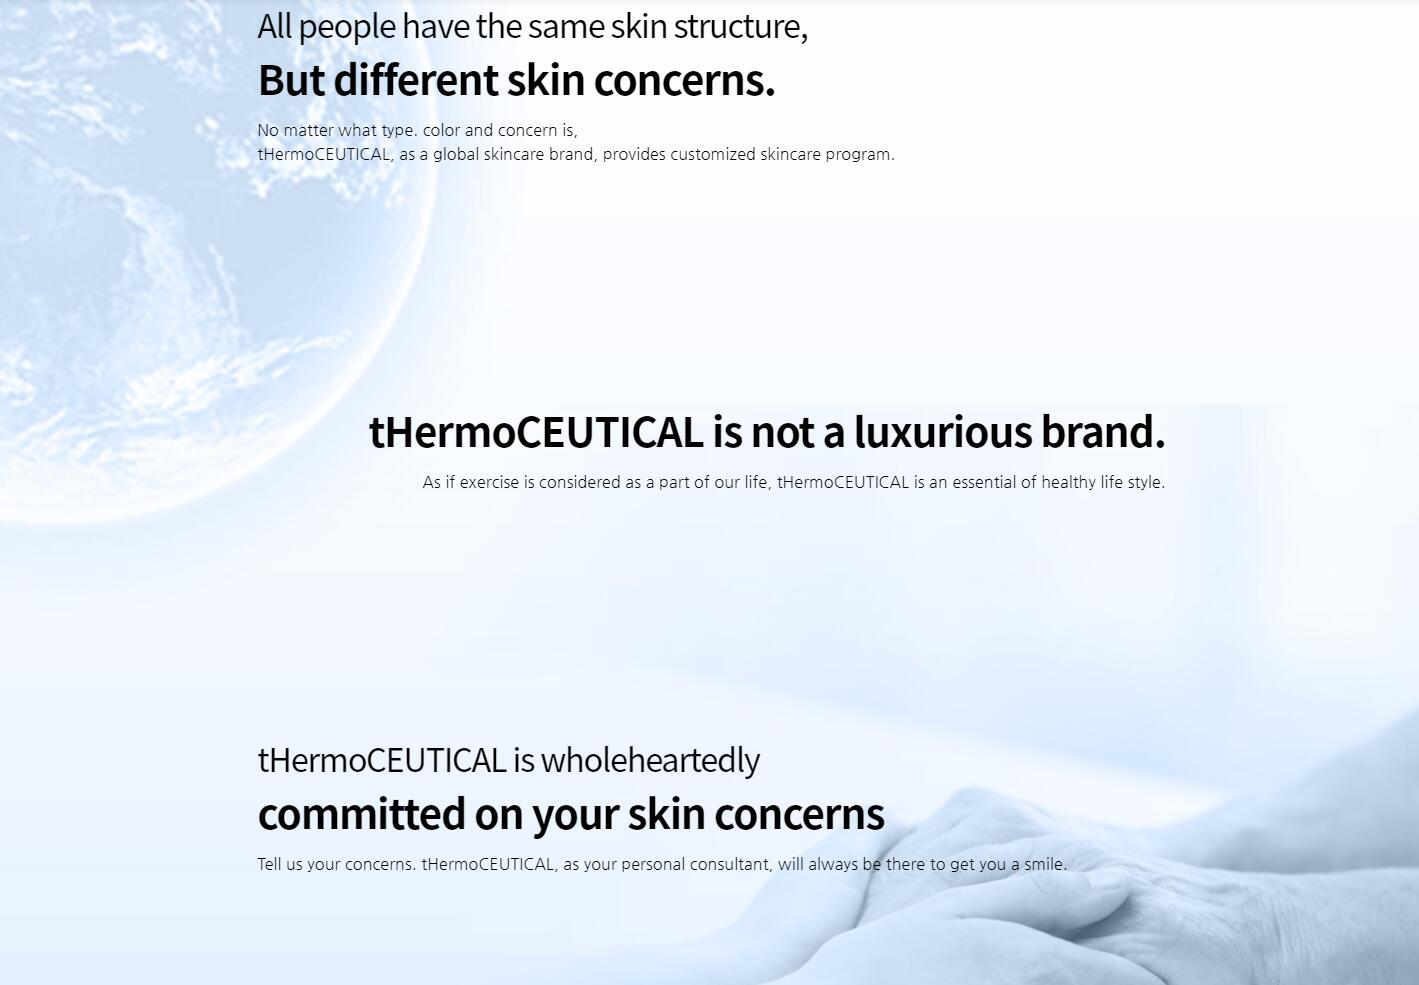 tHermoceutical brand identity 31 degree korea luster beauty international education and trianing academy iiistylecom.jpg